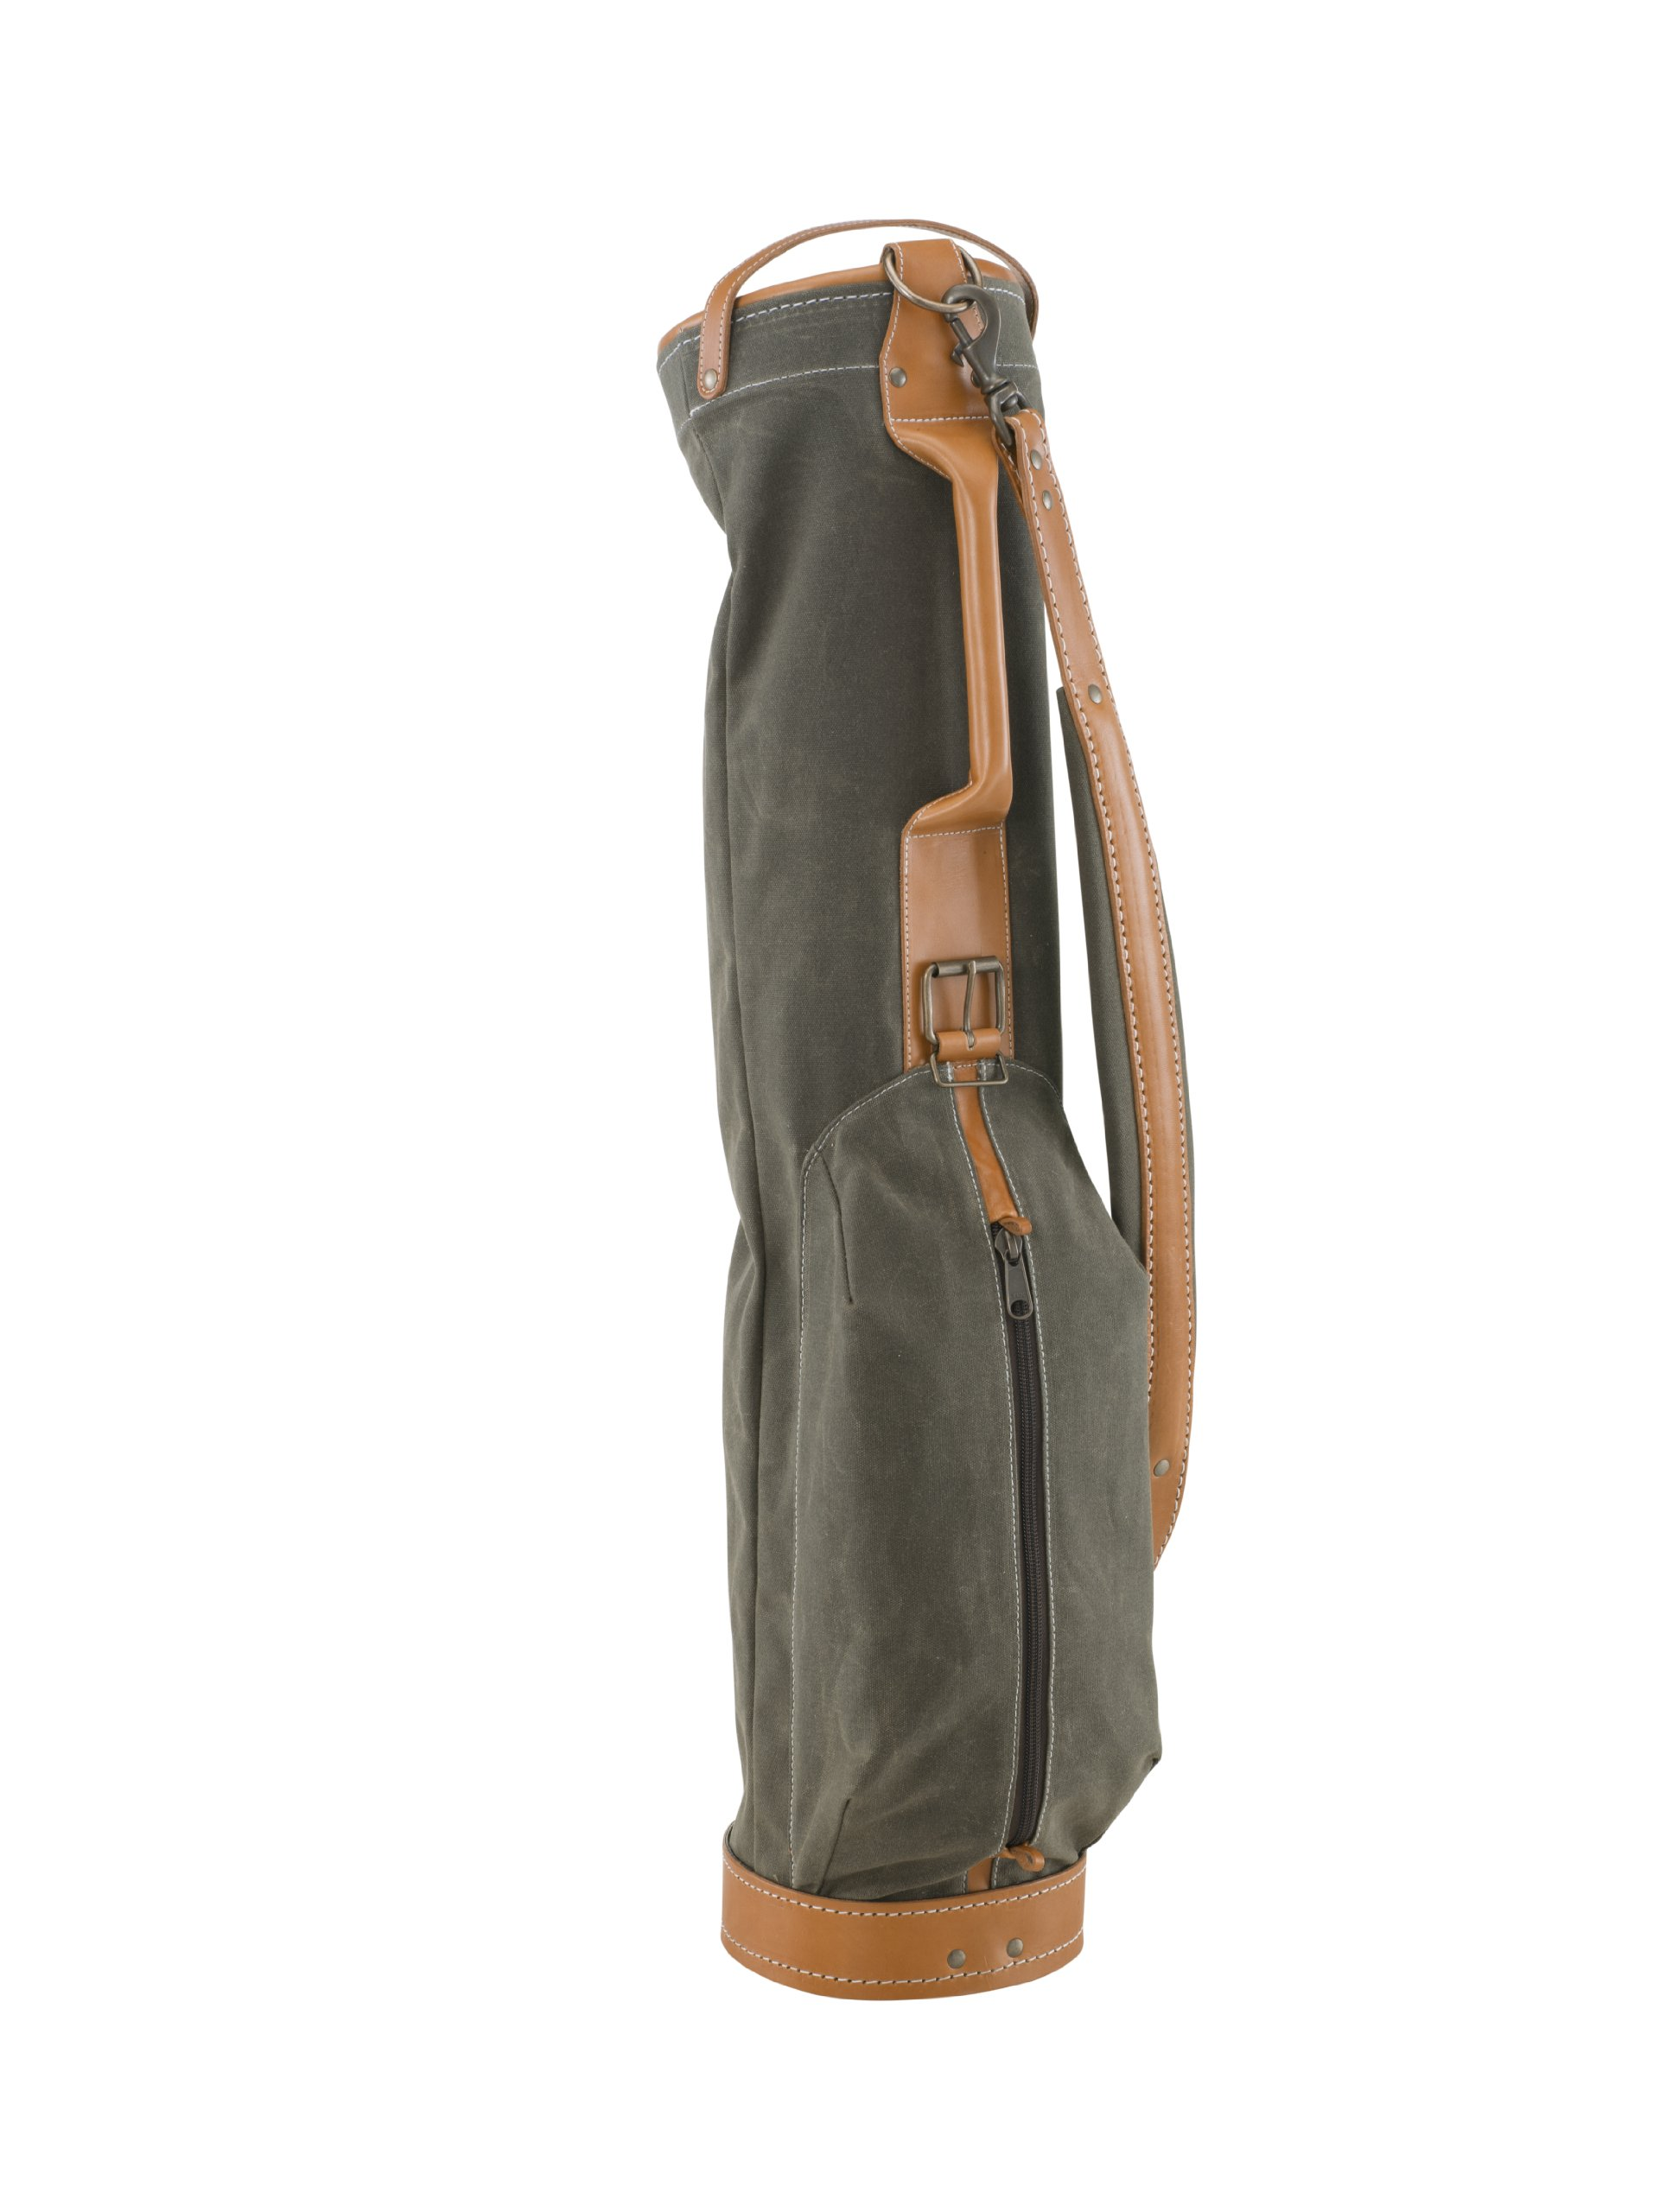 BELDING American Collection Vintage Golf Carry Bag, 7-Inch, Sage by BELDING (Image #1)